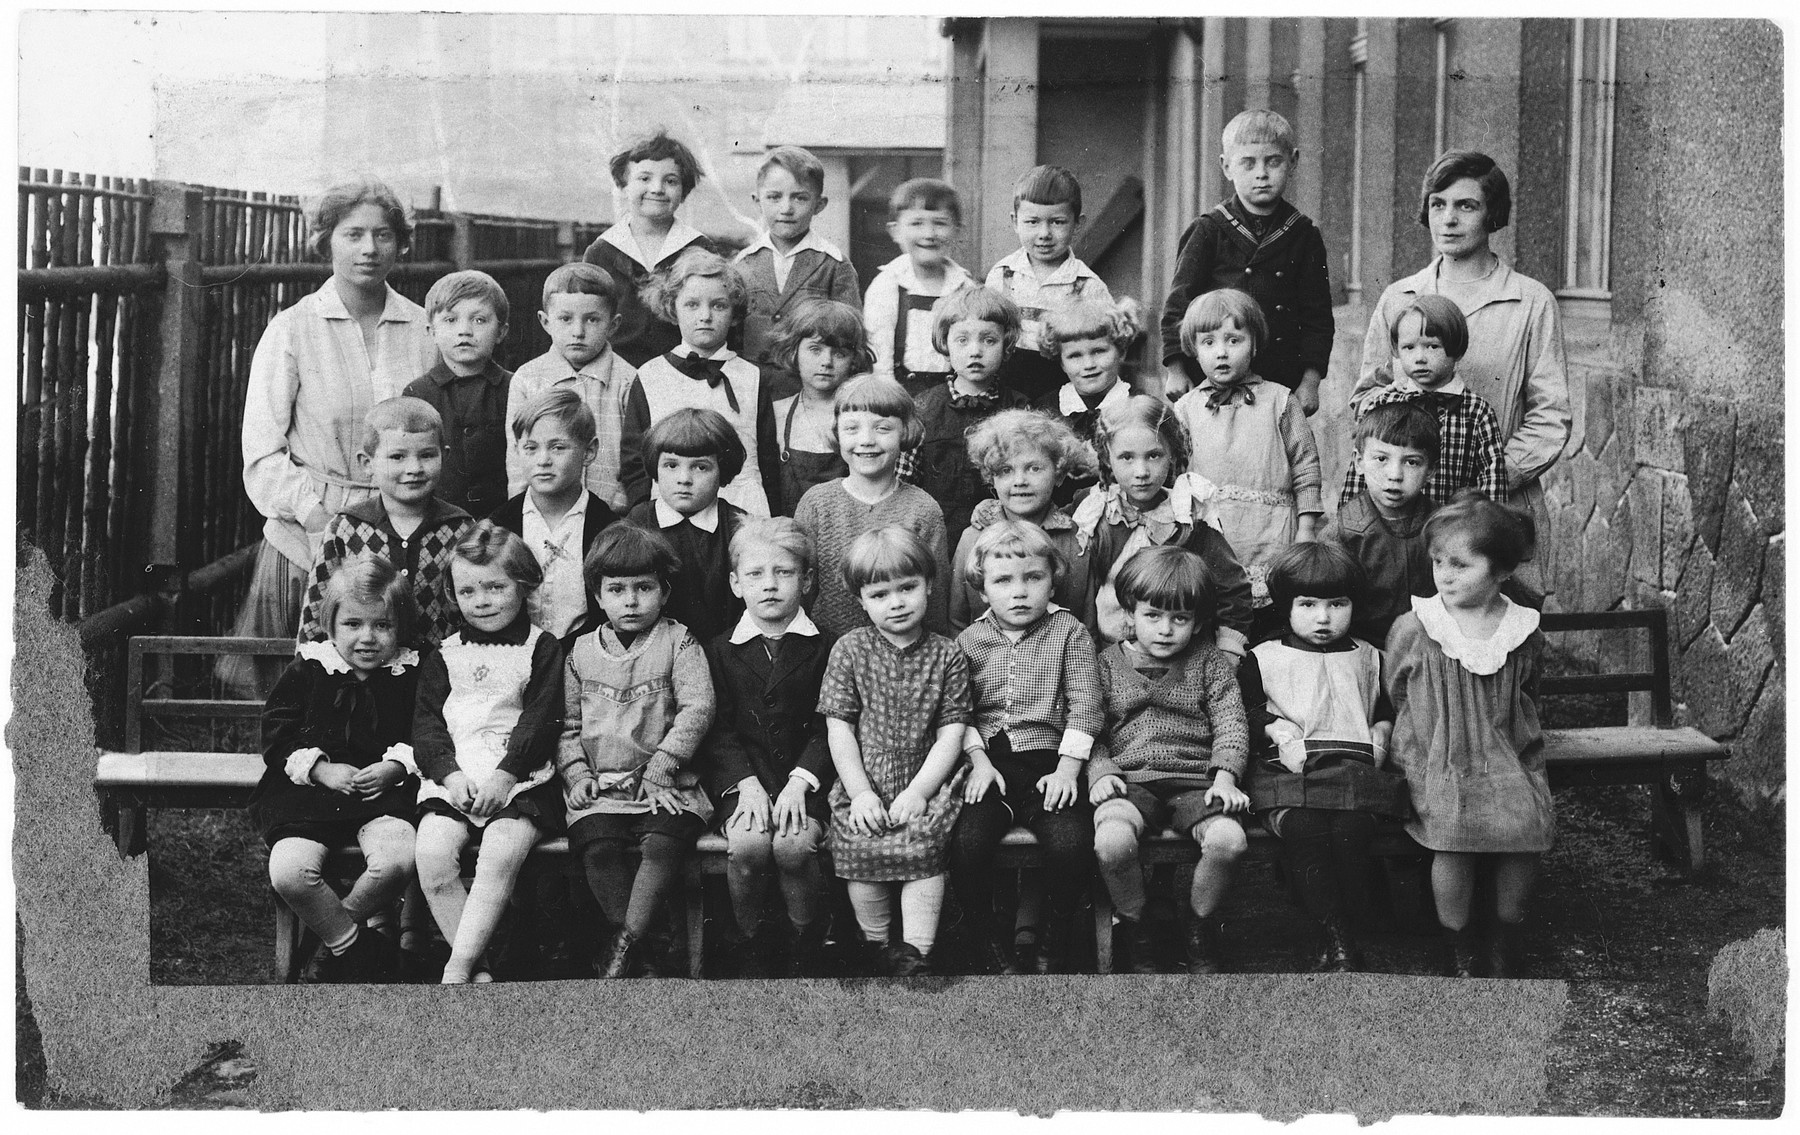 Group portrait of Czech and Jewish children in a kindergarten in Karlsbad, Czechoslovakia.  Among those pictured is Edgar Krasa.